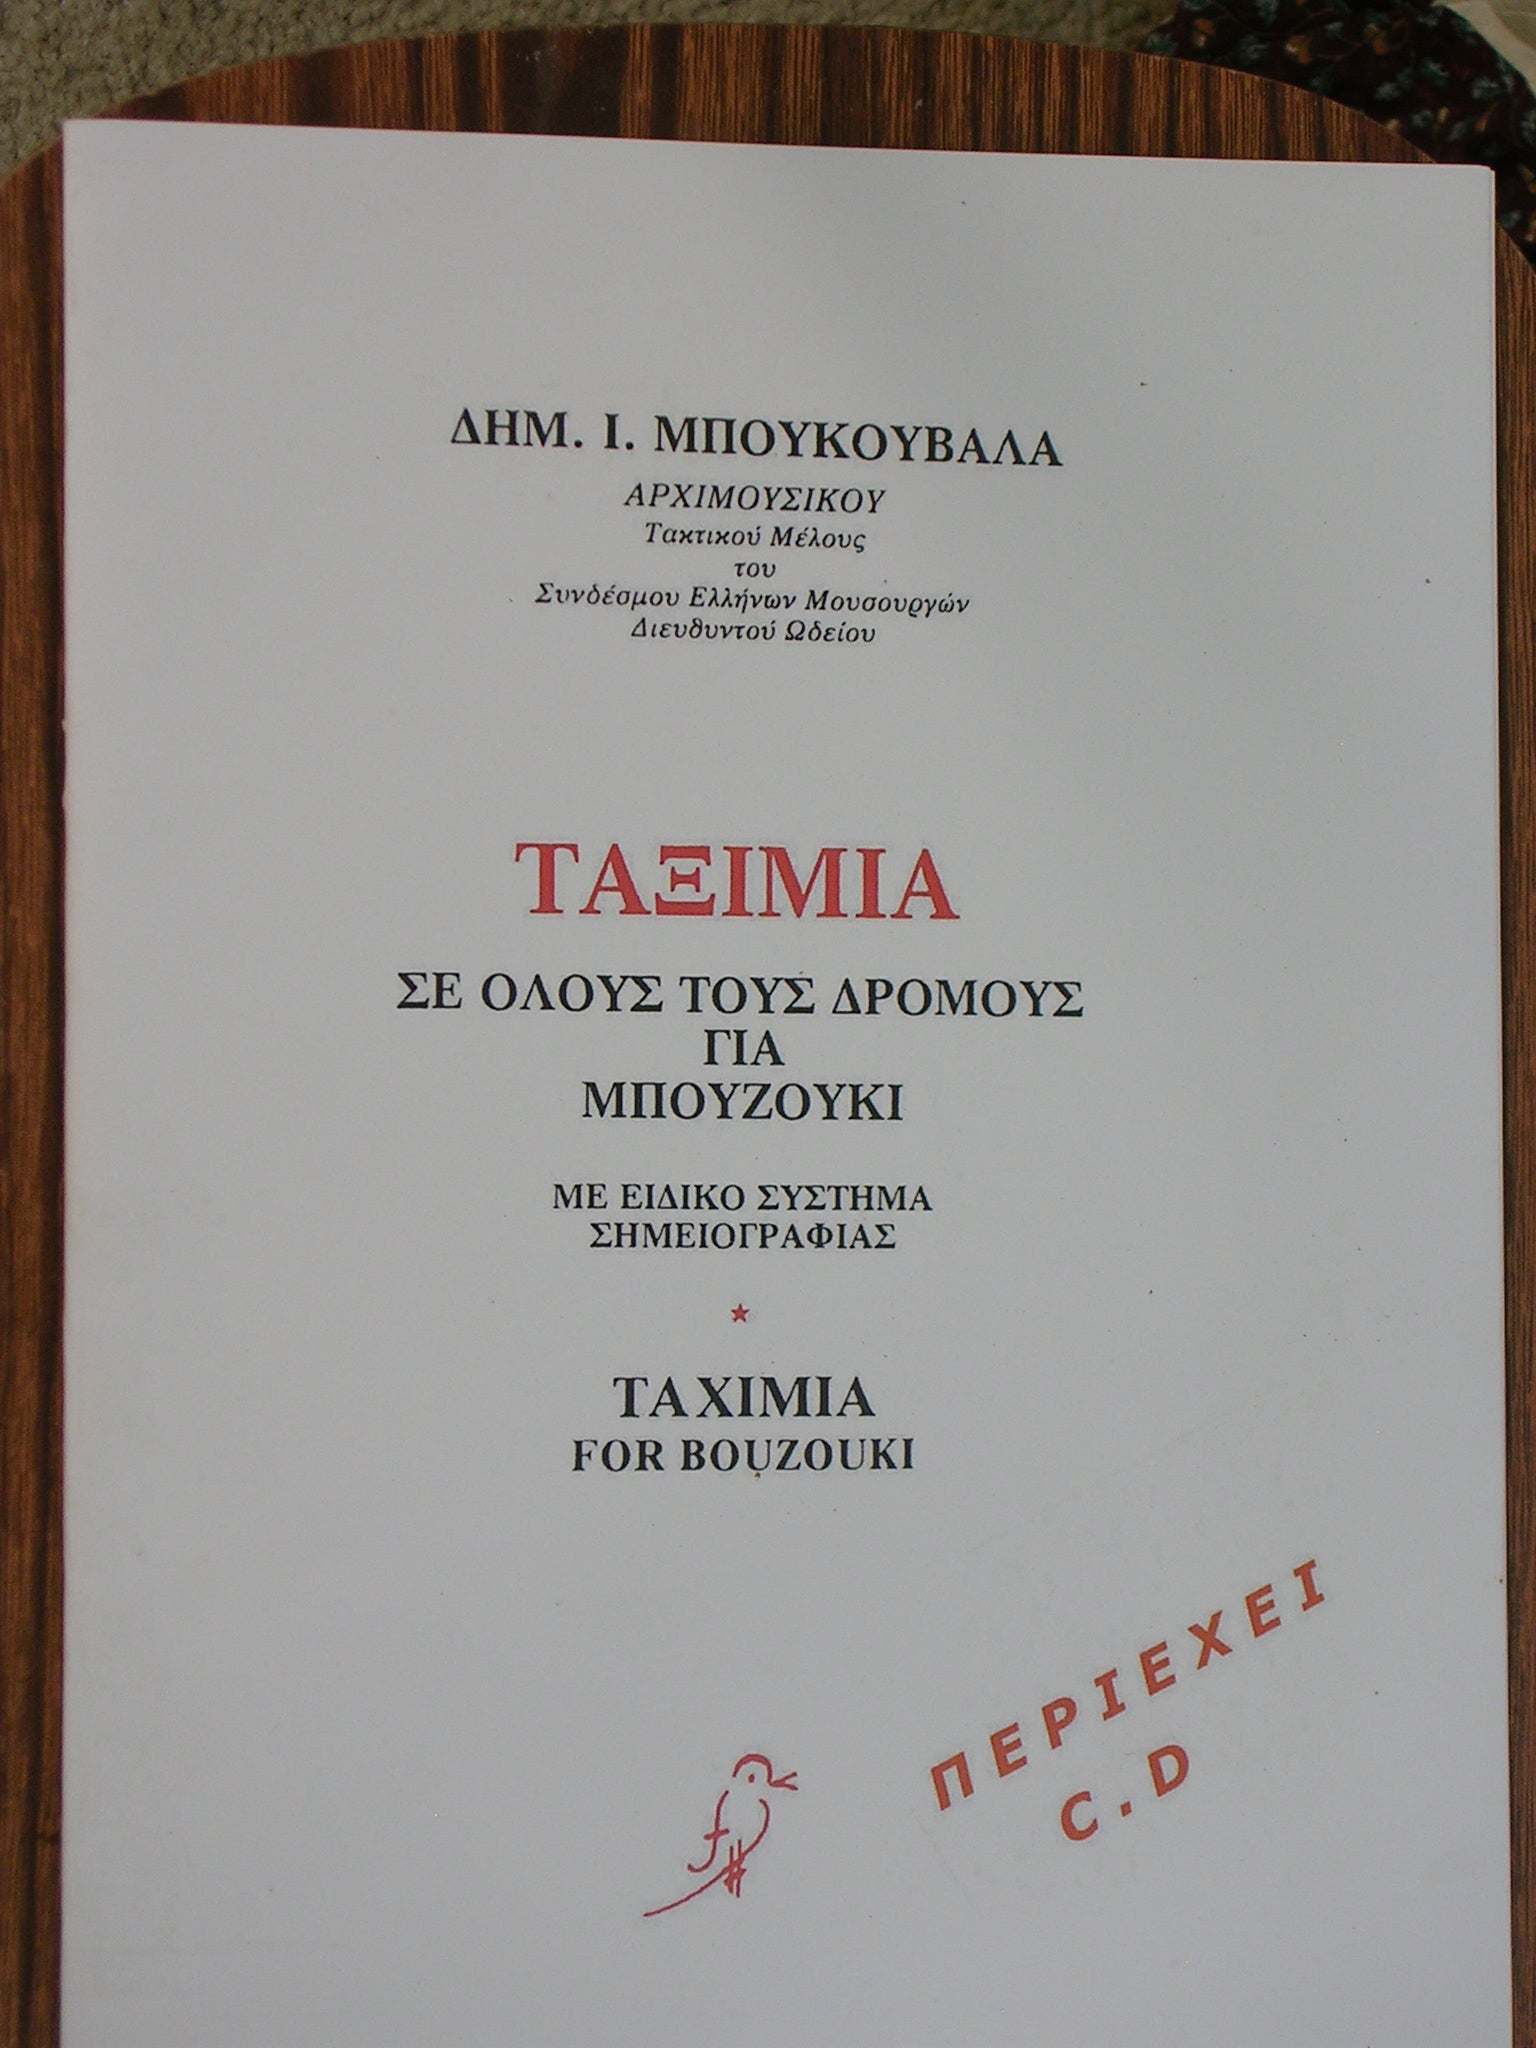 TAXIMIA FOR BOUZOUKI WITH CD